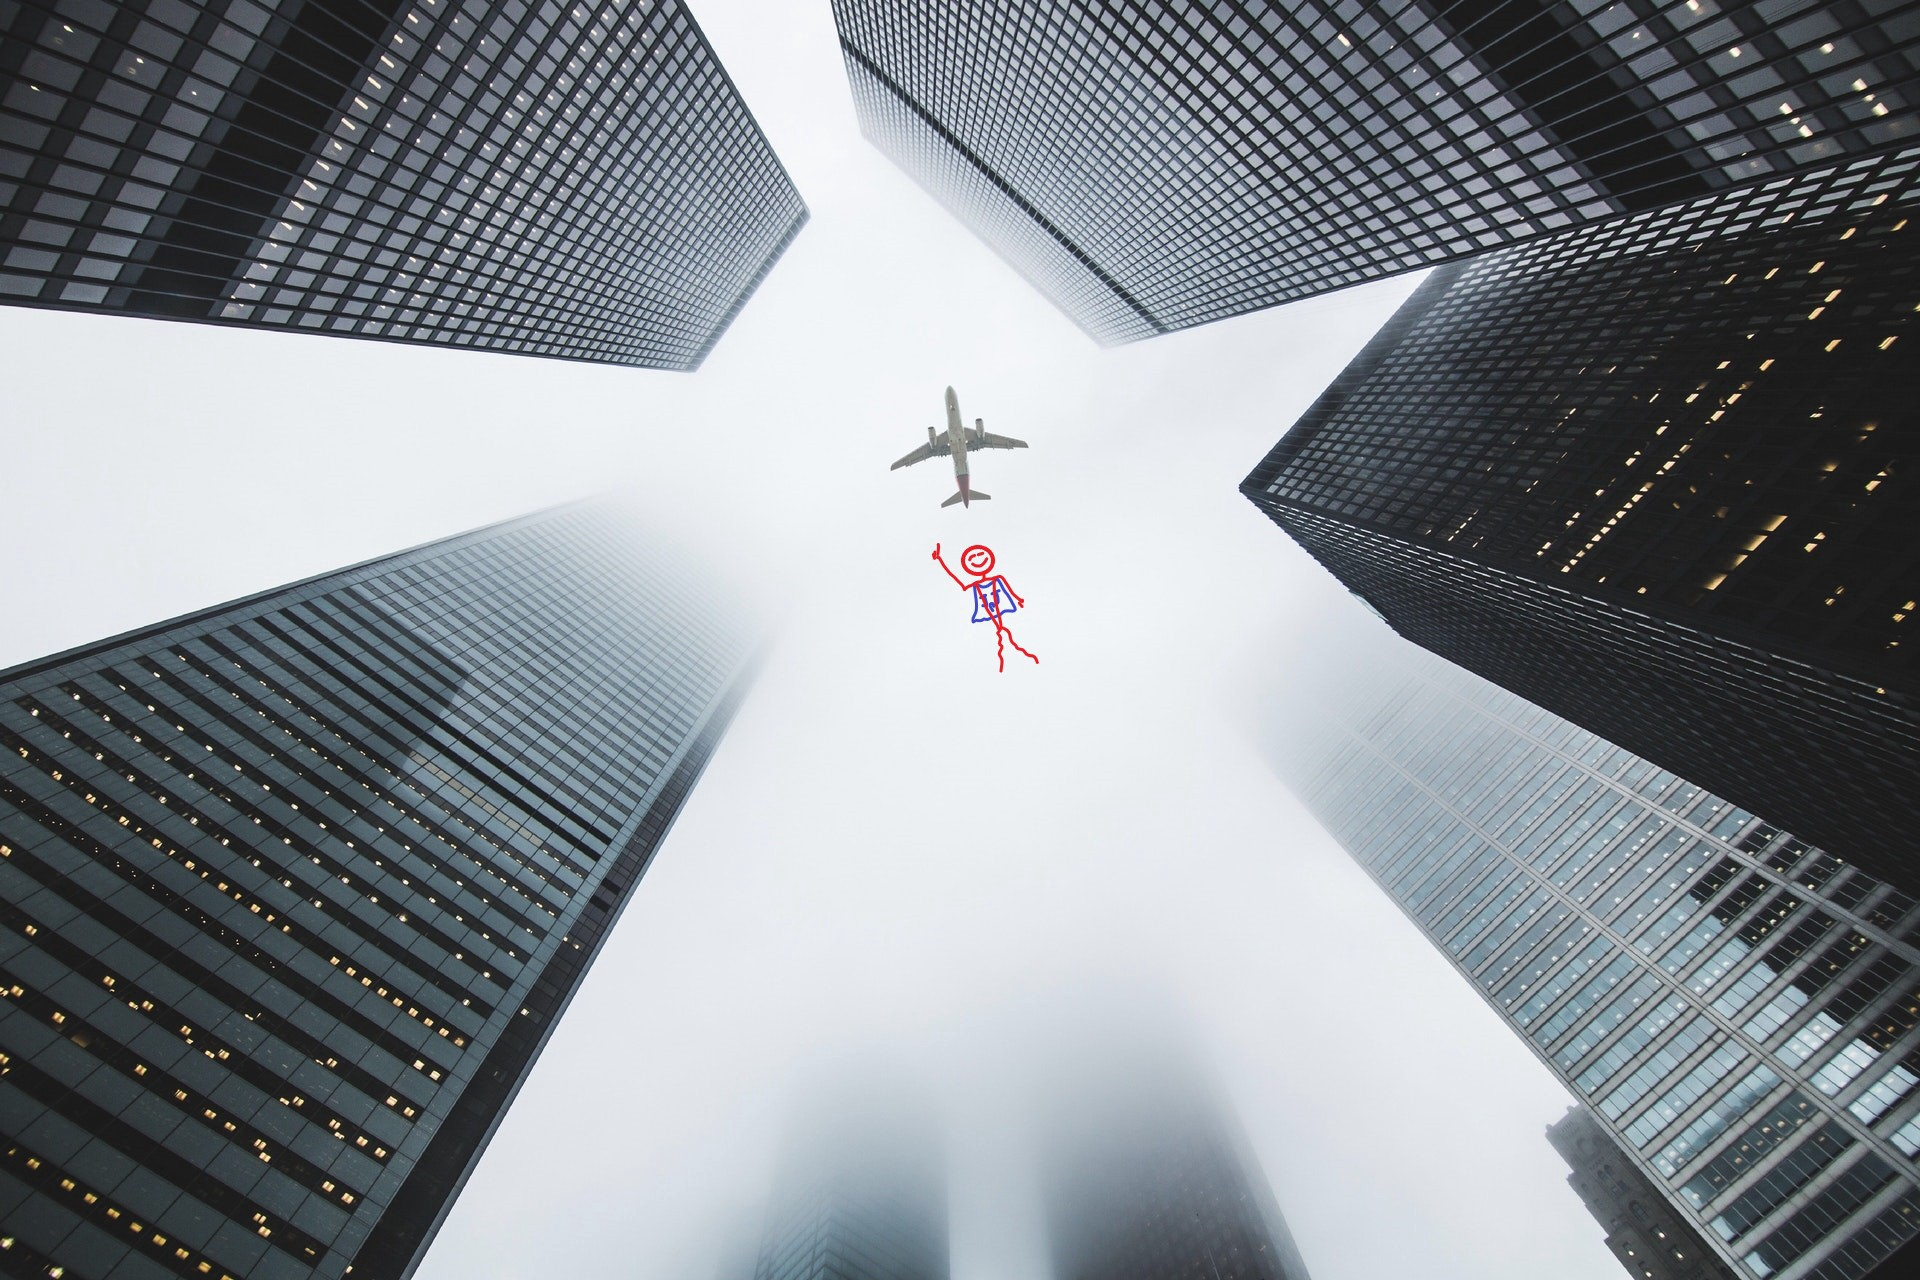 A plan flying above four buildings being chased by a stick figure